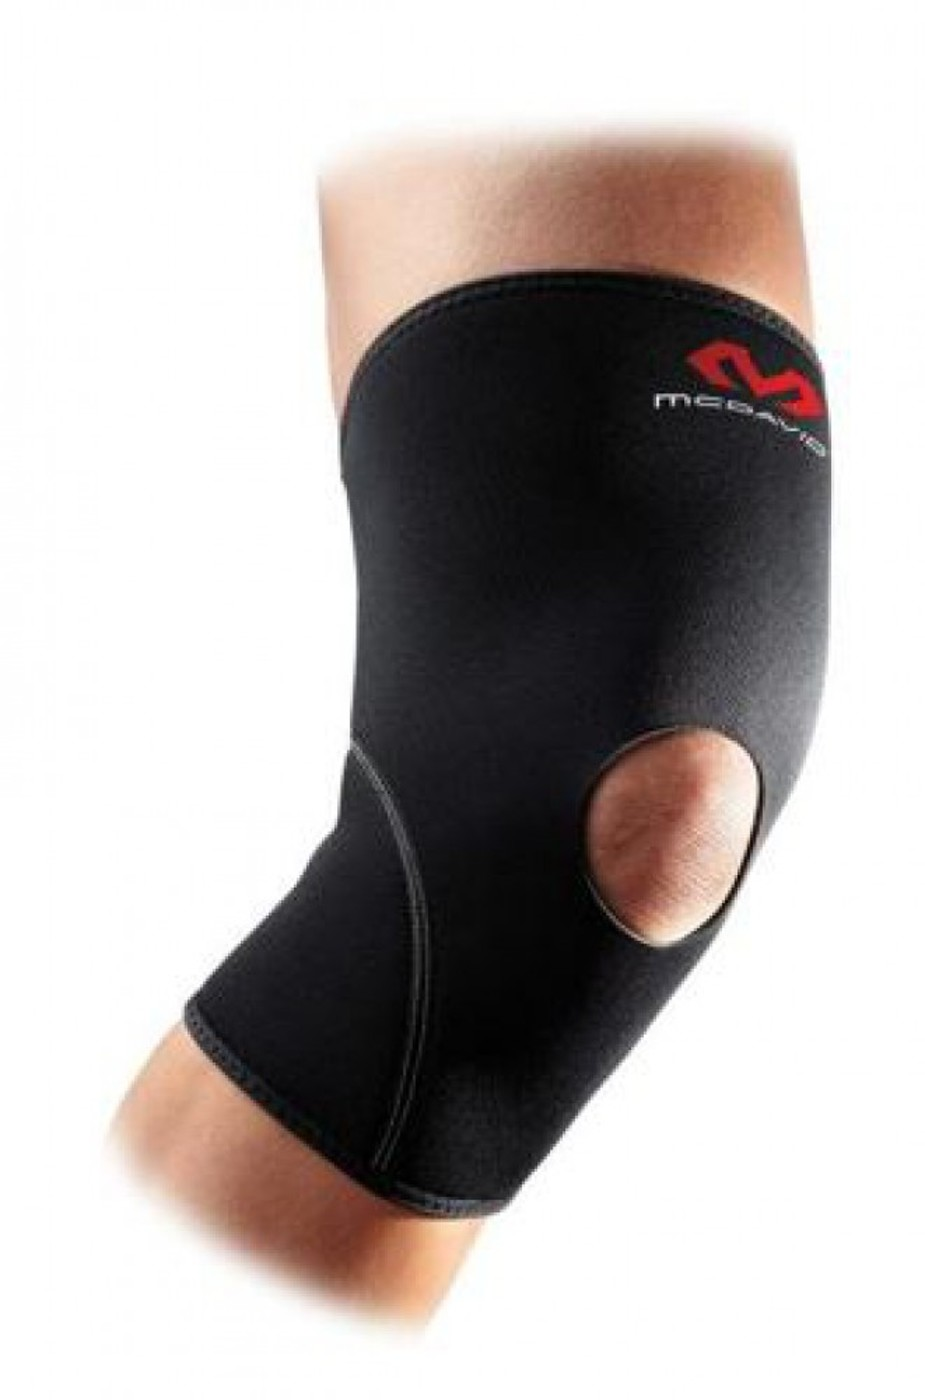 MC DAVID Kniebandage Neoprene